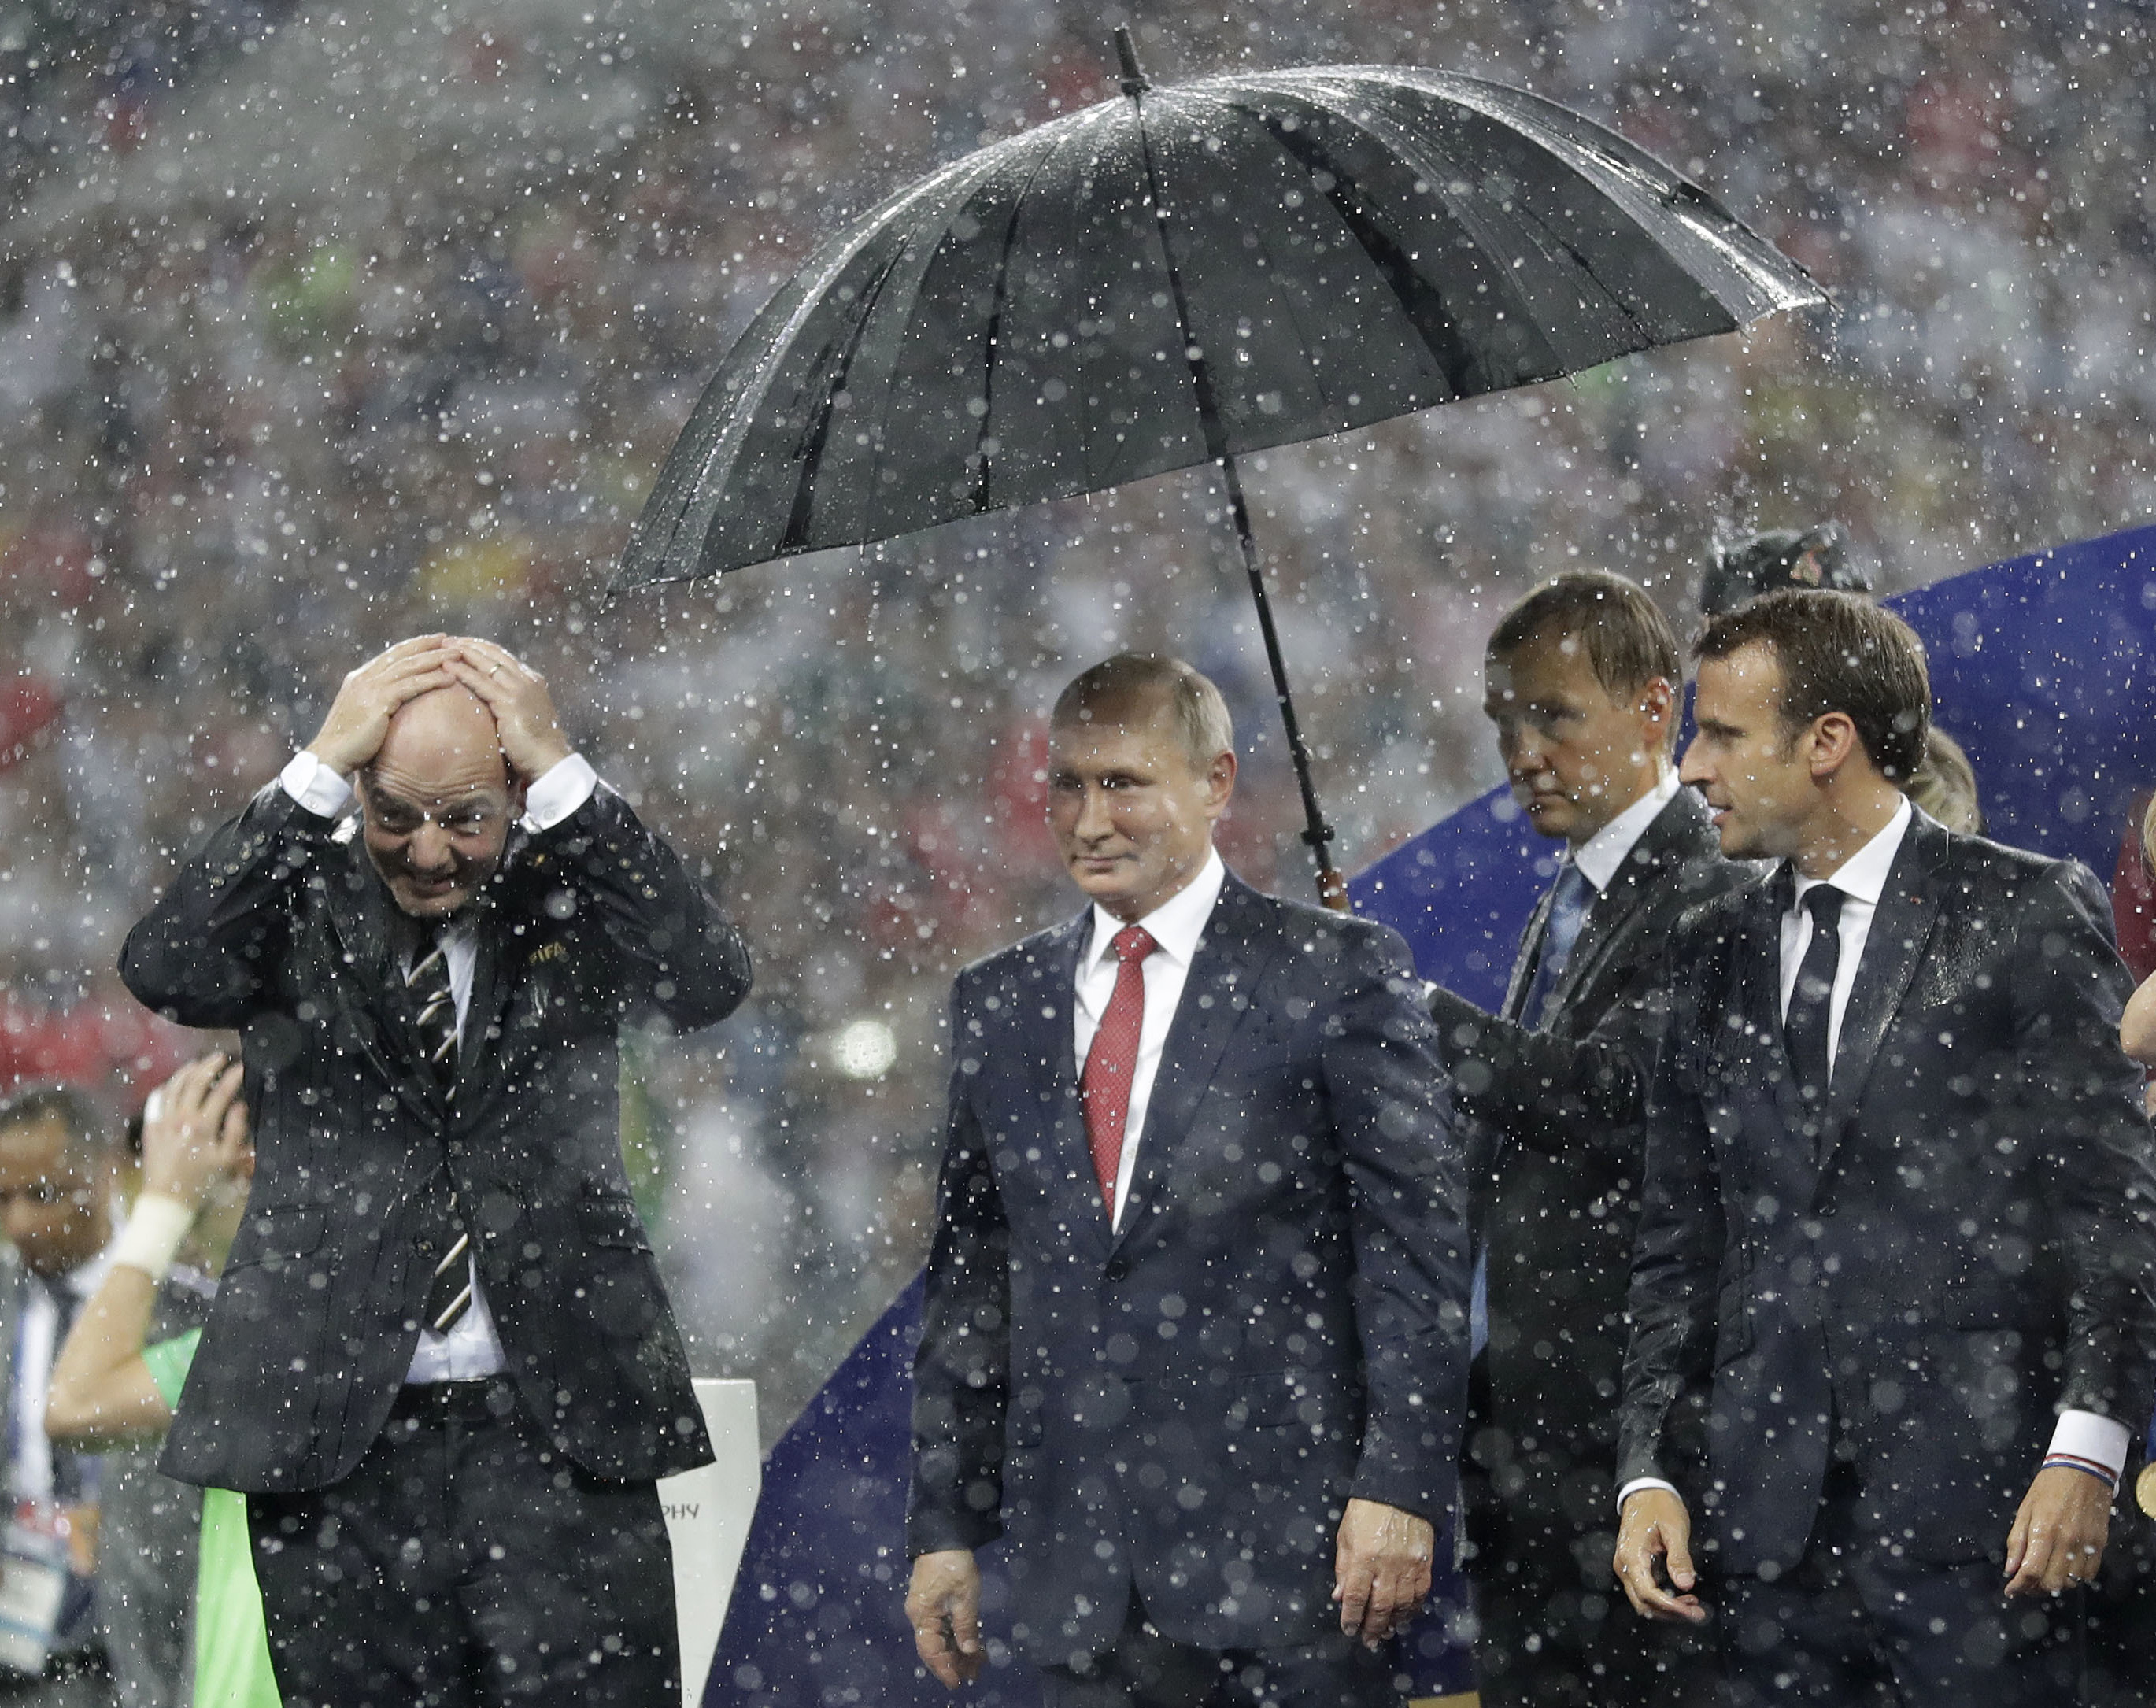 Vladimir Putin stands underneath an umbrella watched by French President Emmanuel Macron after the final match between France and Croatia at the 2018 World Cup  WATCH: Putin arrives for face-to-face talks with Trump in Helsinki 2